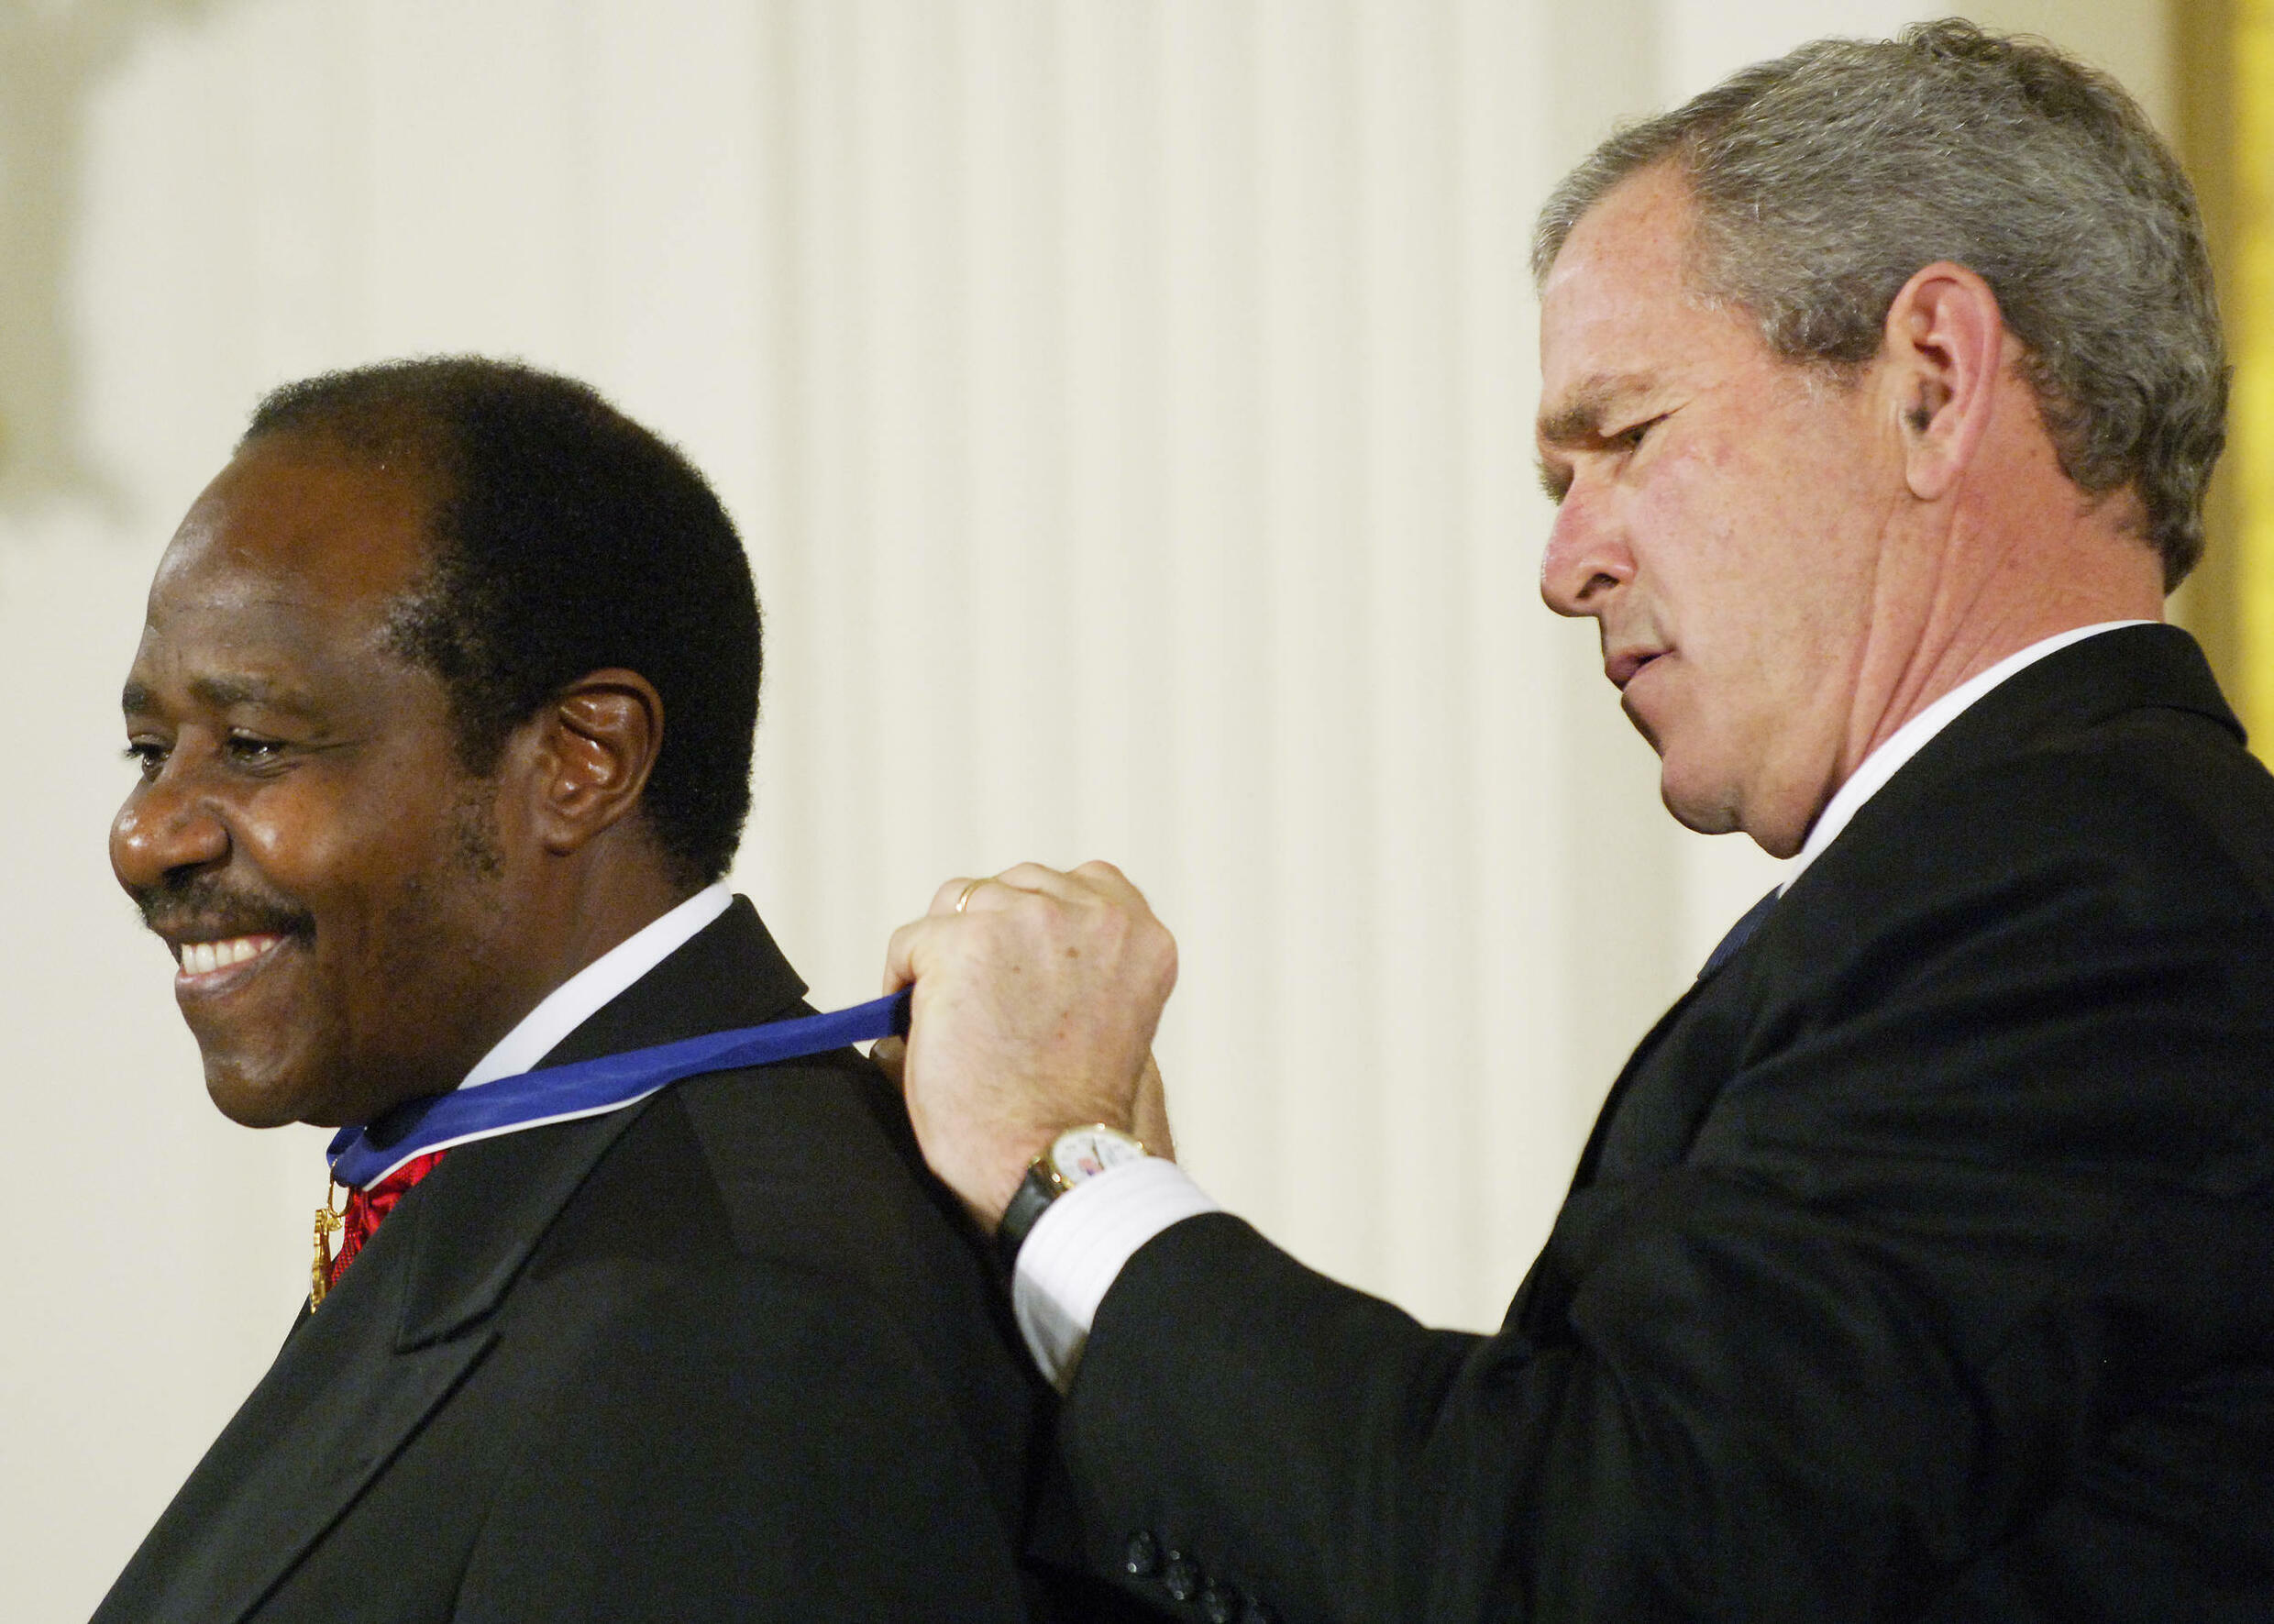 Rusesabagina received the Presidential Medal of Freedom from US President George W. Bush in 2005